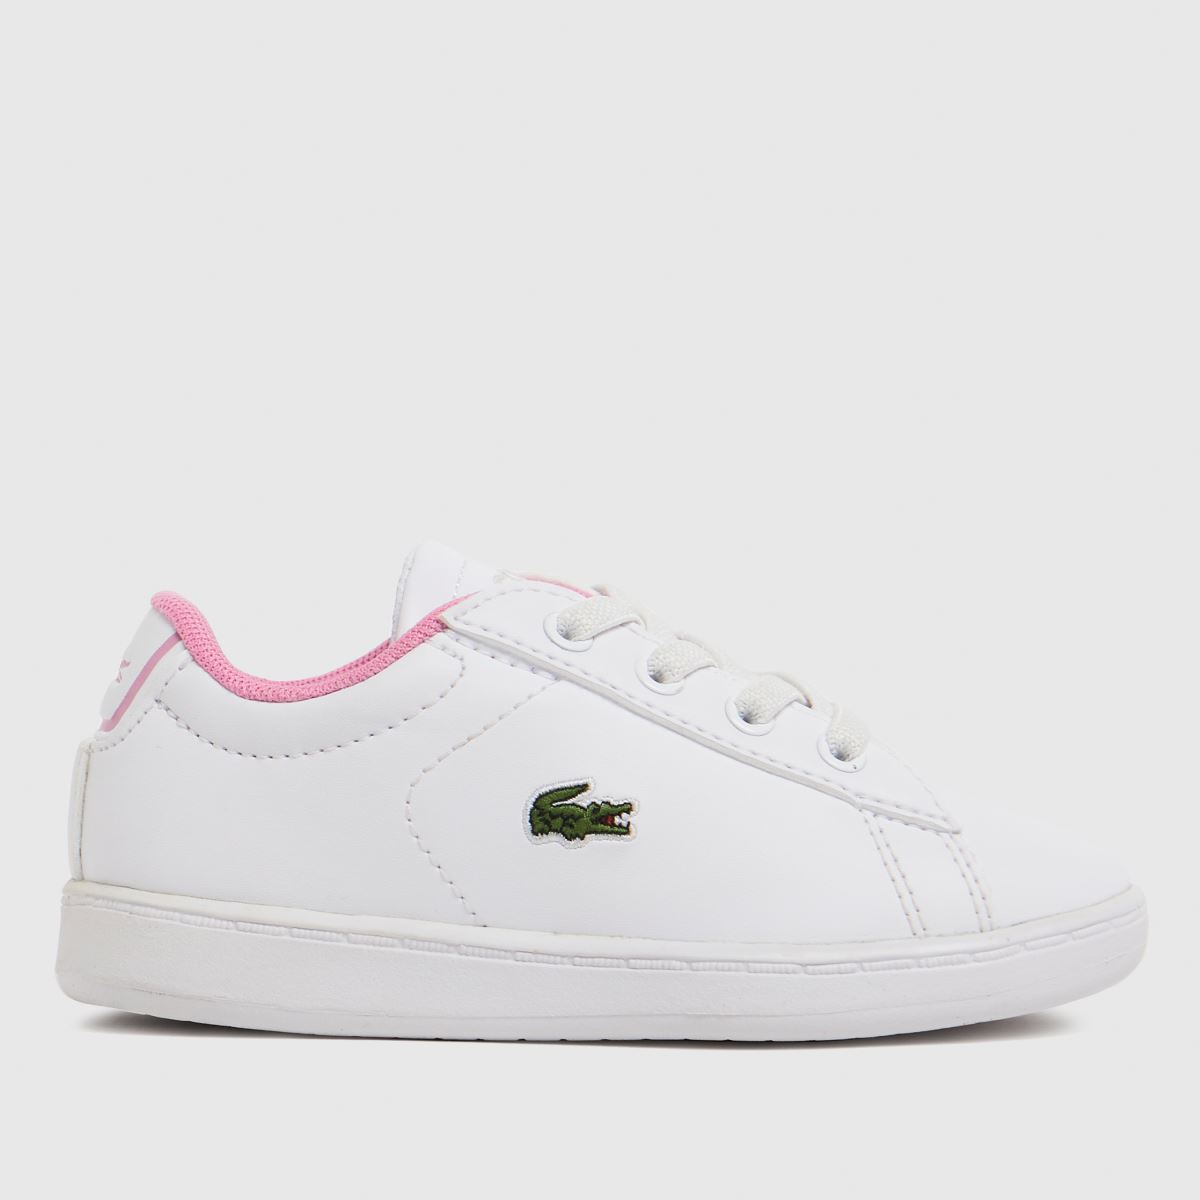 Lacoste White & Pink Carnaby Evo Trainers Toddler